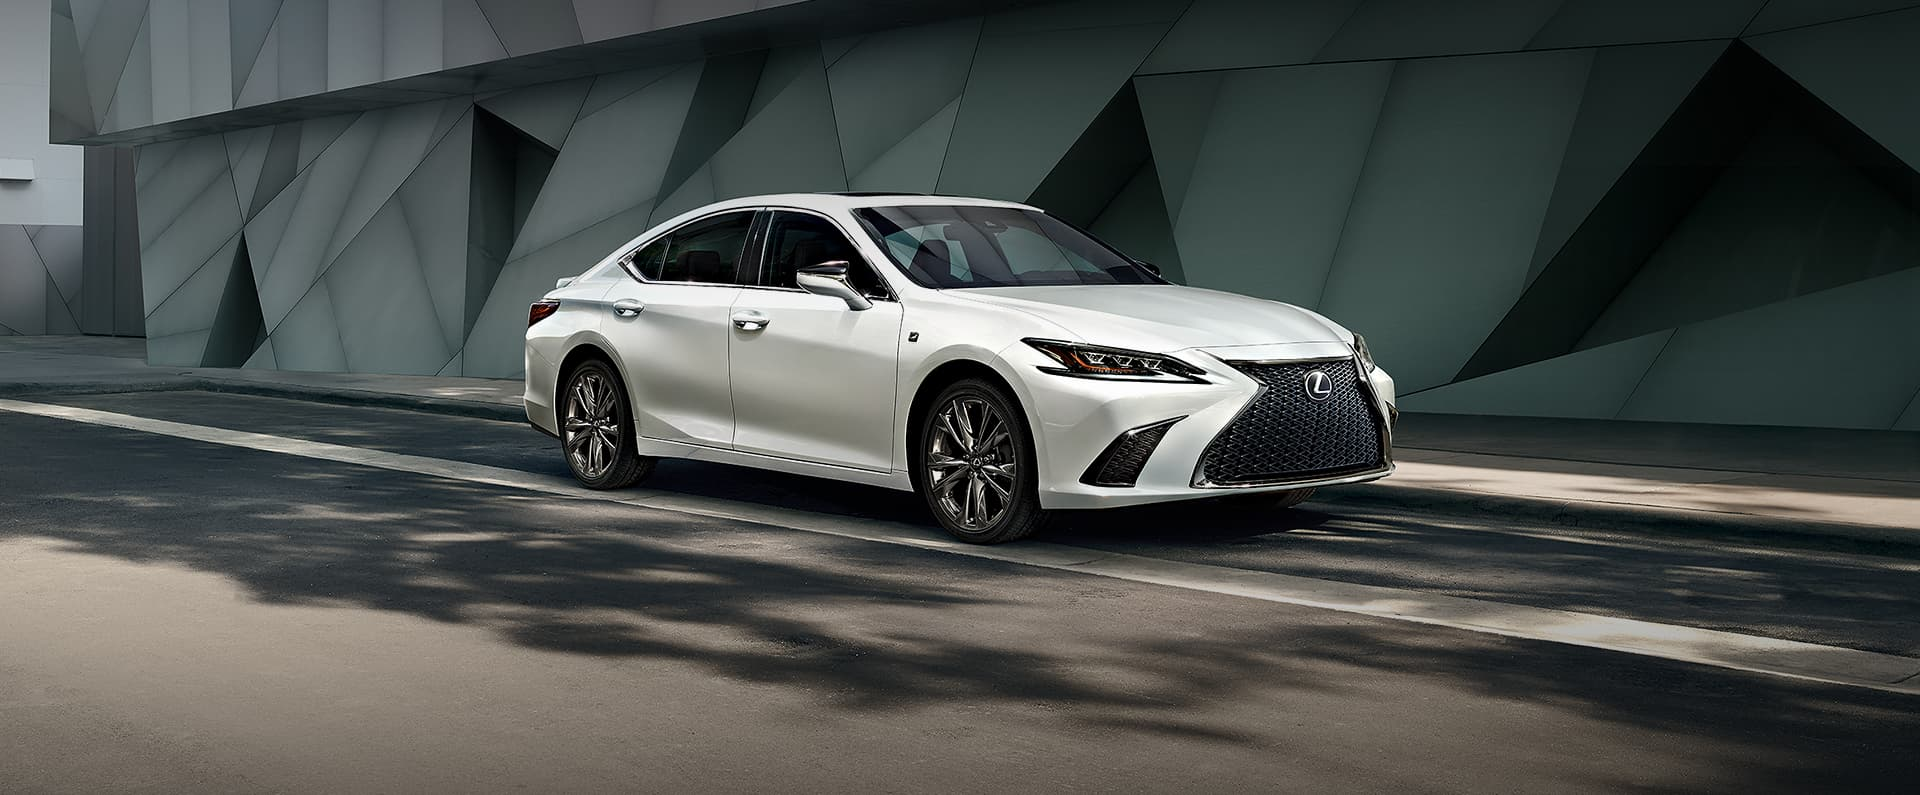 2019 Lexus Es 300h Premier Price In Uae Specs Review In